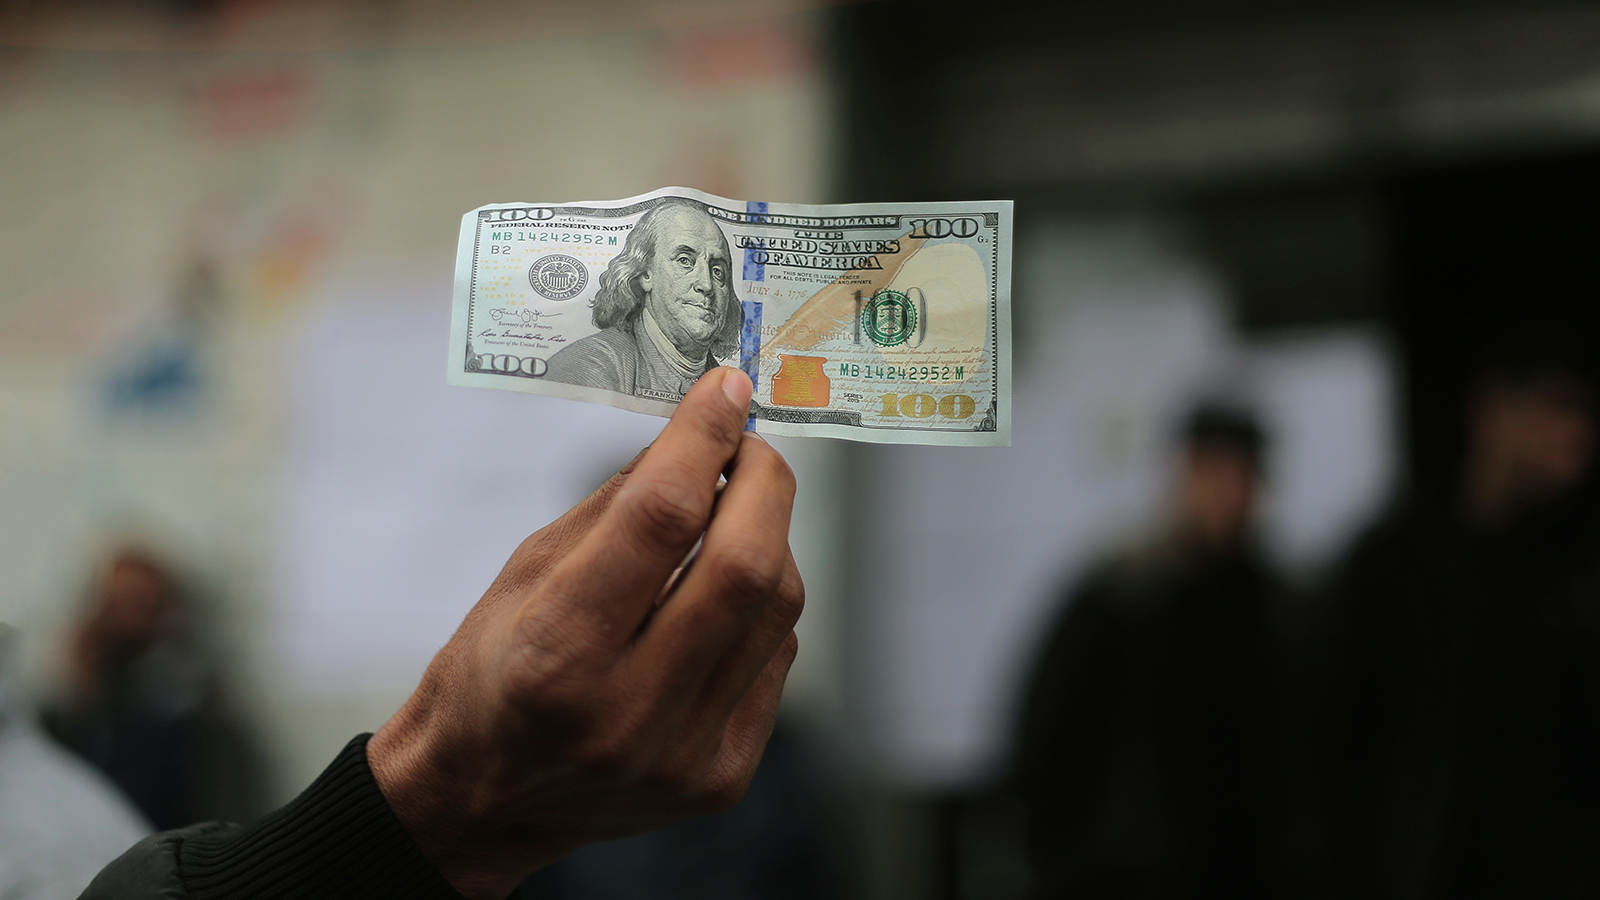 The world now needs weakening Dollar